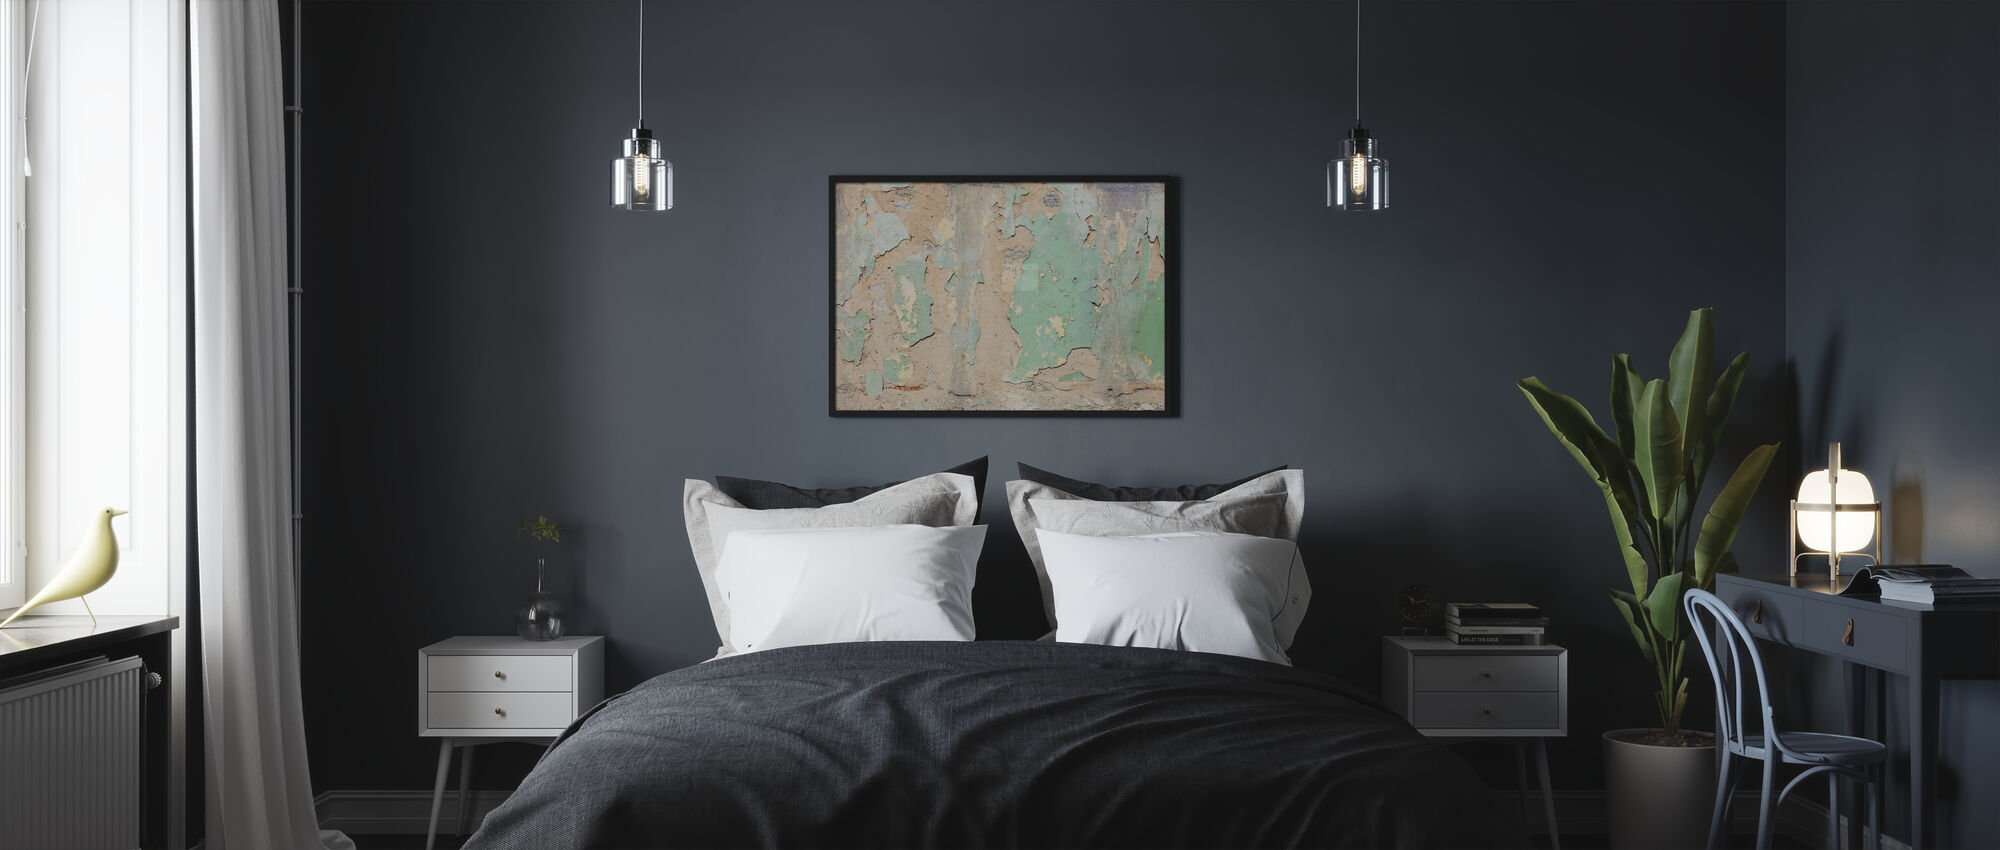 Worned Out Wallpaper - Poster - Bedroom